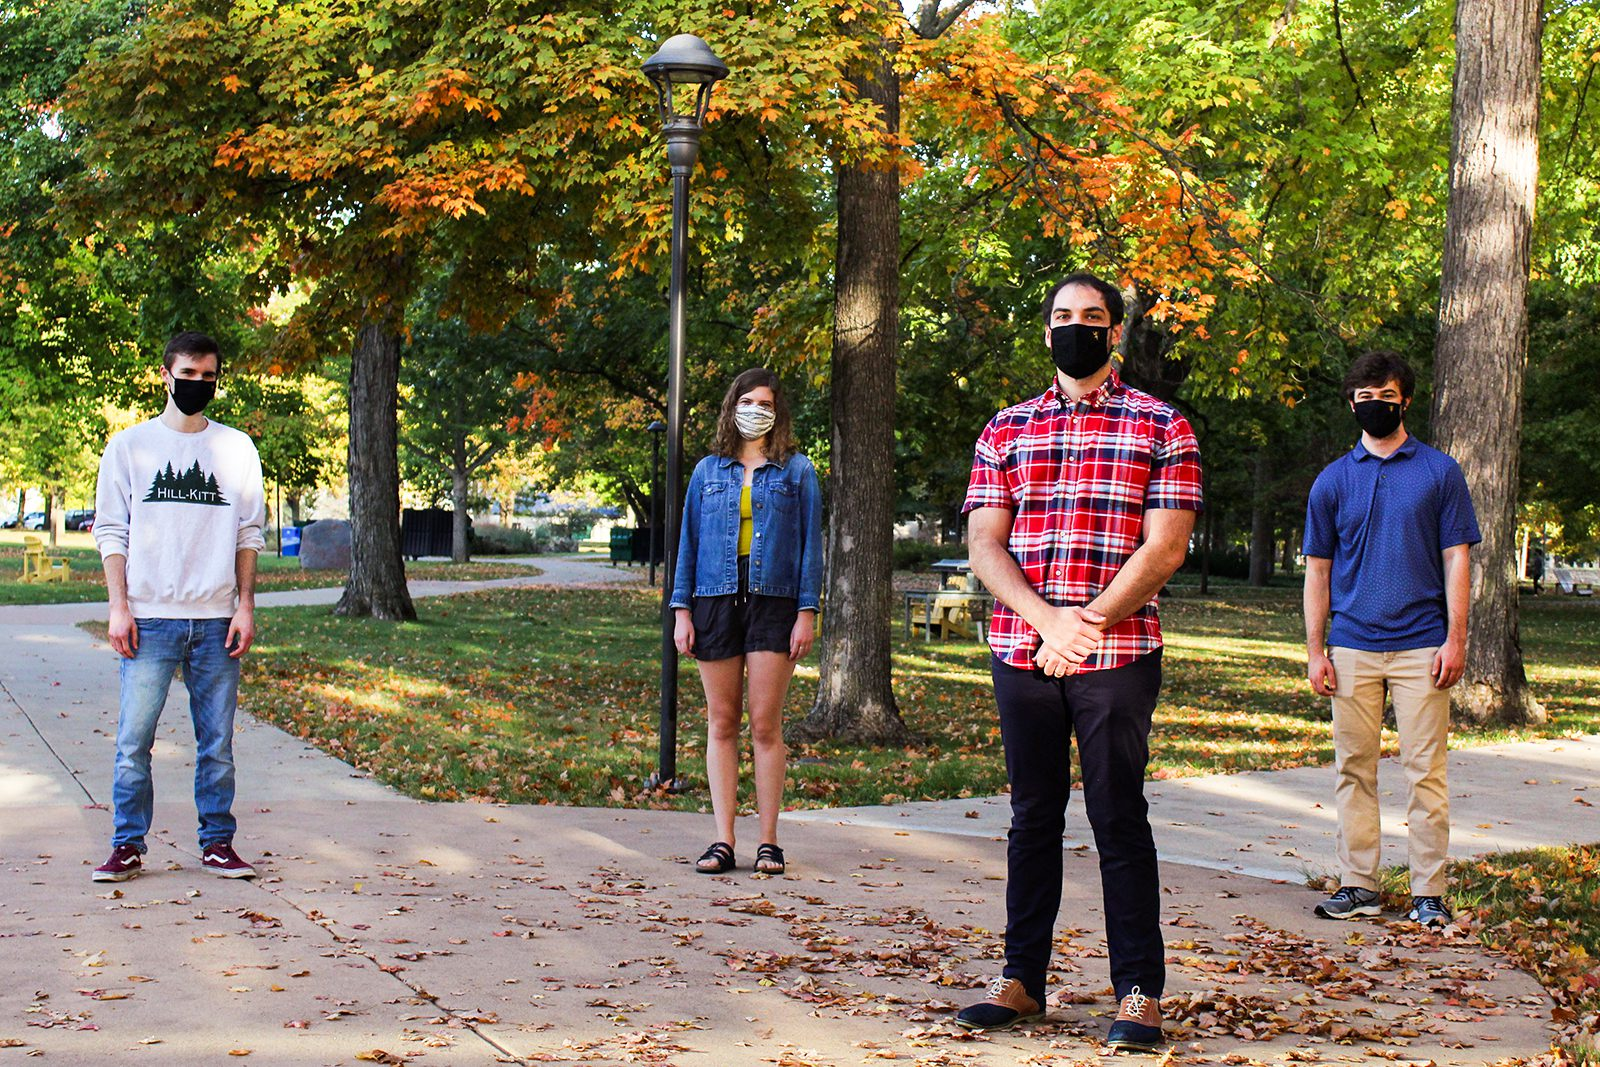 Assistant Professor of Mathematics, Statistics, and Computer Science David Walmsley (front) on campus this fall with Math 119 Academic Assistants (from left) Ethan Ormerod '22, Martha Barnard '21, and Noah Hillman '21.